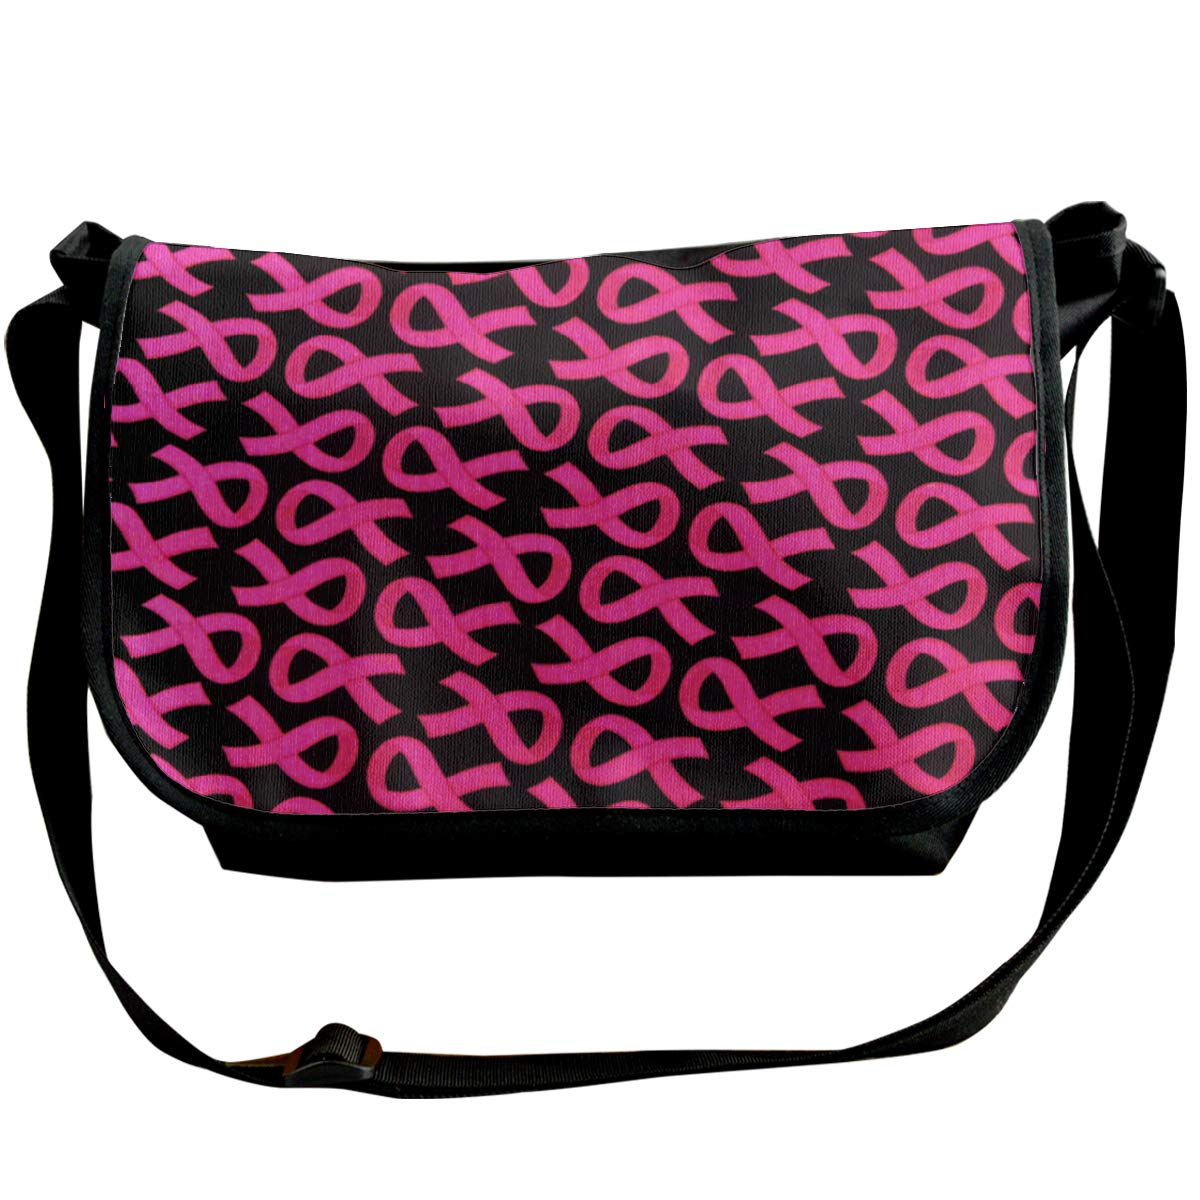 Breast Cancer Awareness Travel Messenger Bags Handbag Shoulder Bag Crossbody Bag Unisex Futong Huaxia Pink Ribbon